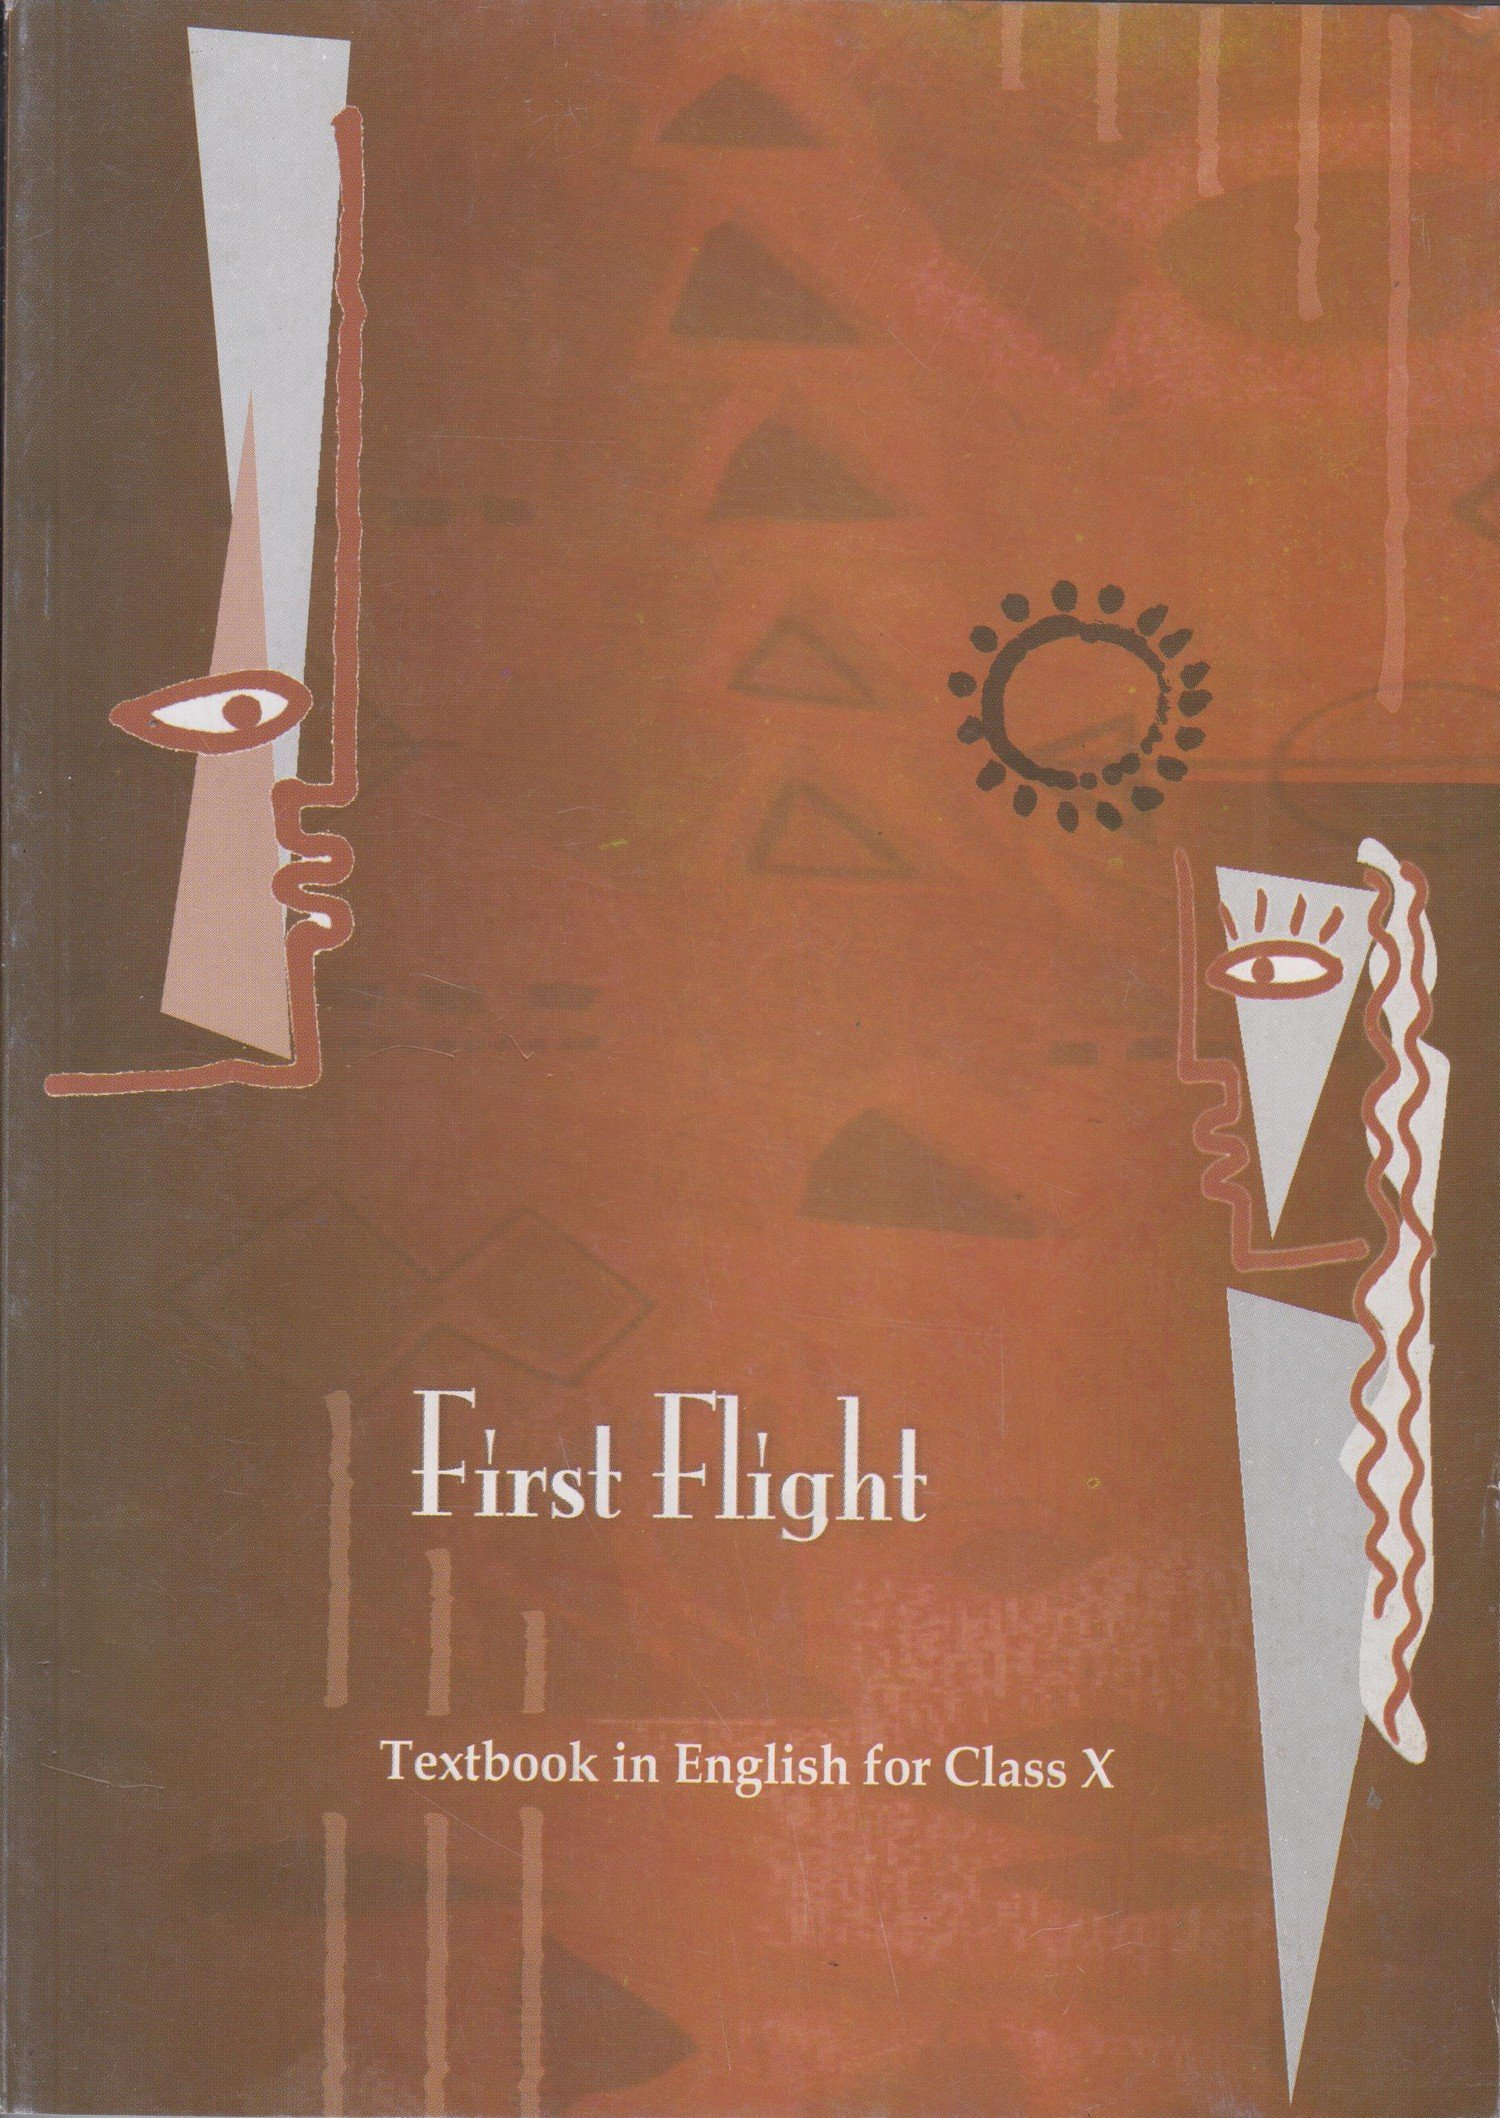 First Flight for Class - 10 Textbook in English - 1059: Amazon.in: NCERT:  Books